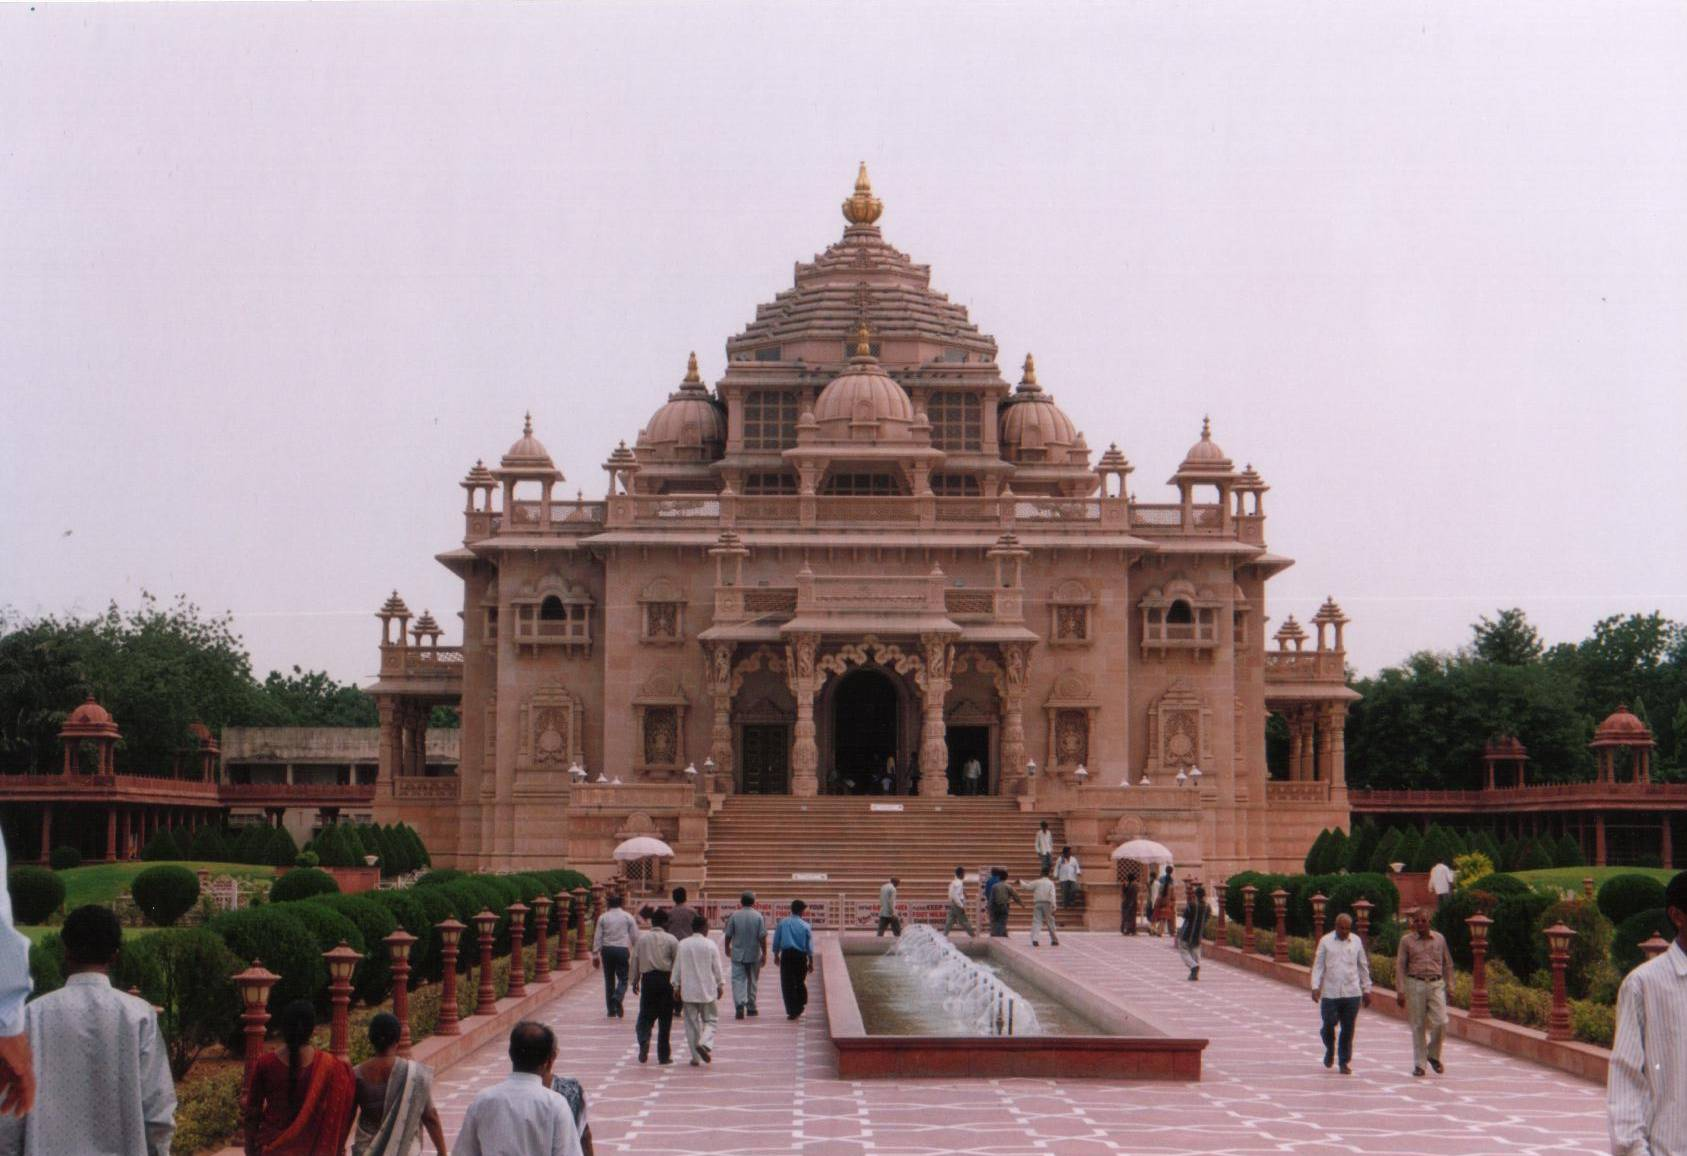 Akshardham temple jaipur photos images and wallpapers mouthshut akshardham temple jaipur image 4 altavistaventures Gallery